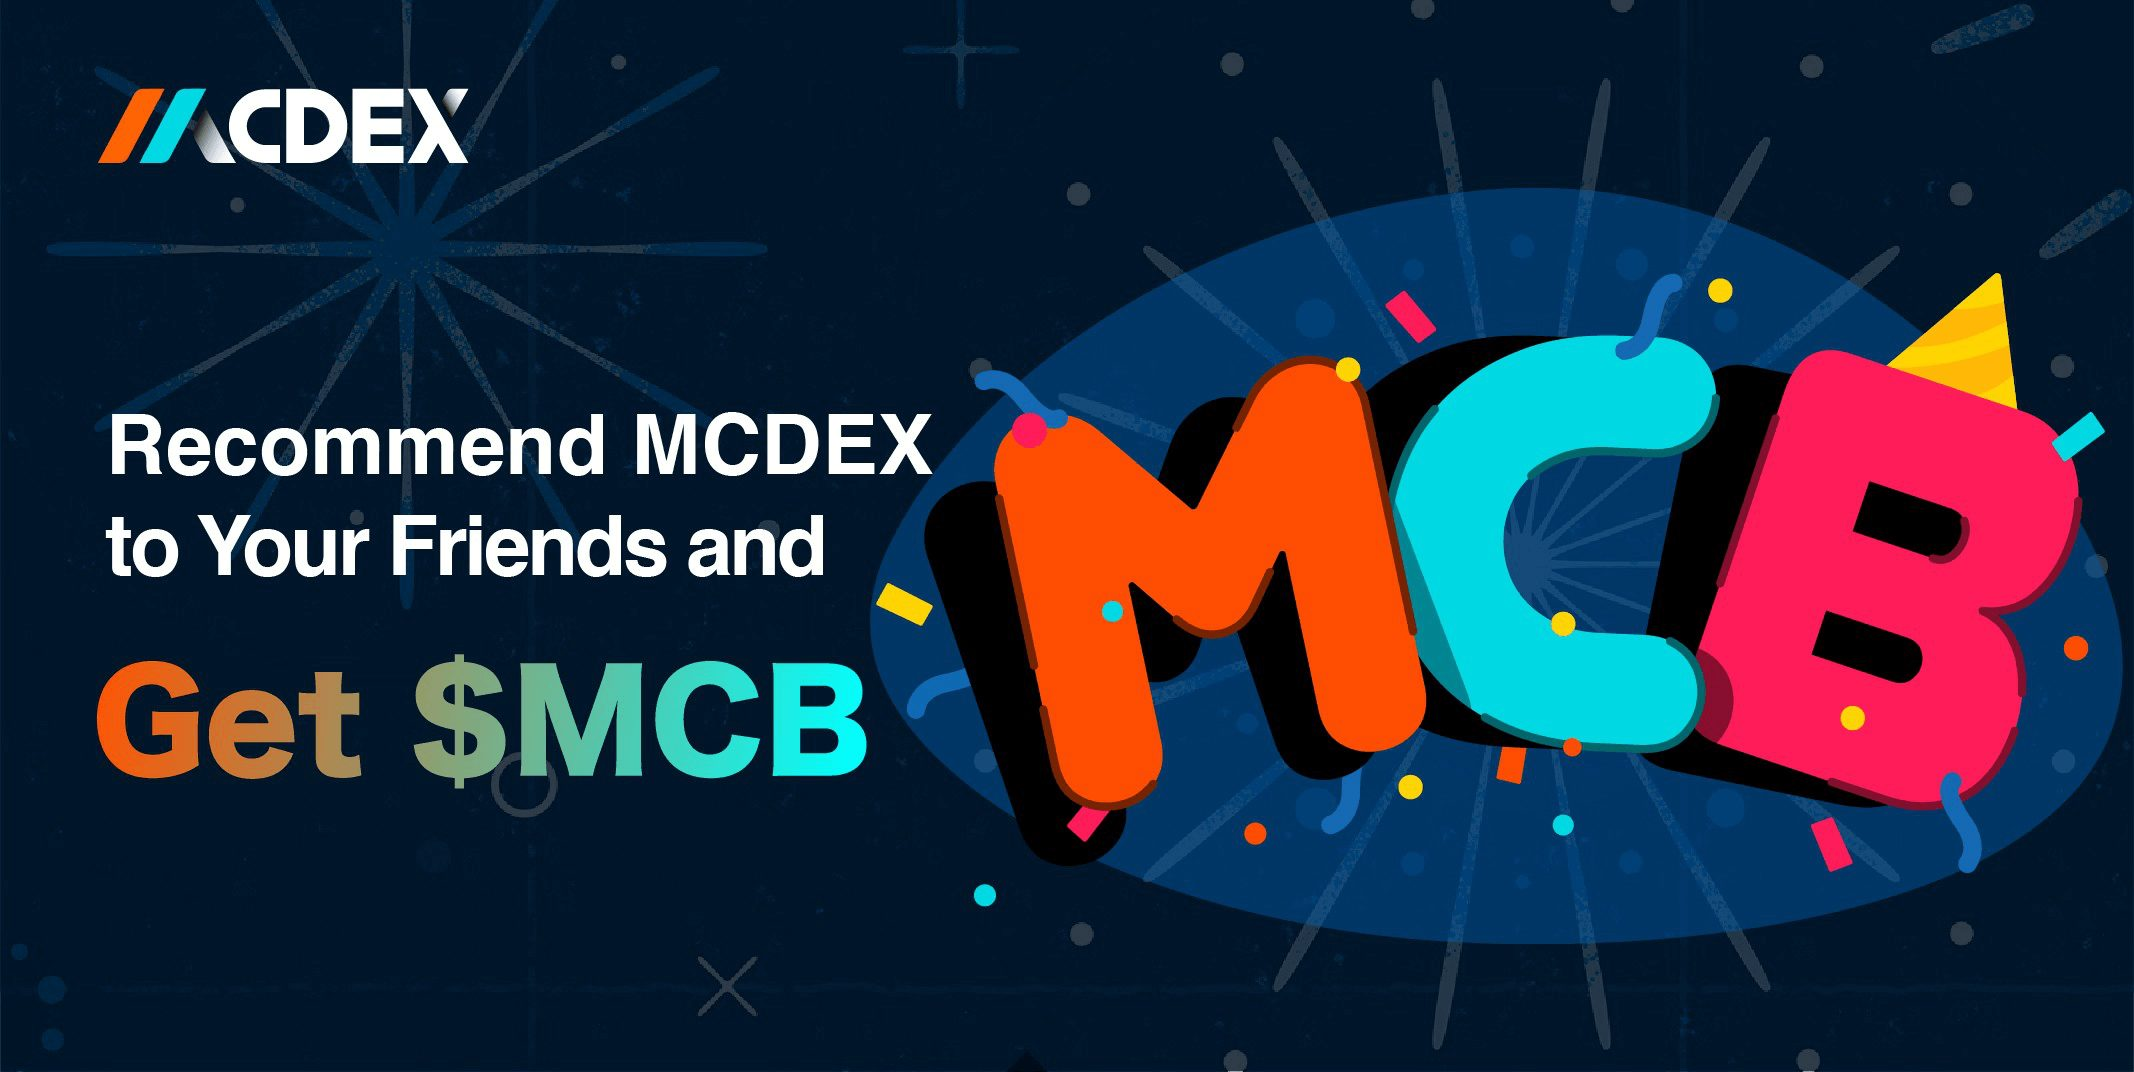 MCDEX Recommend and Reward Campaign